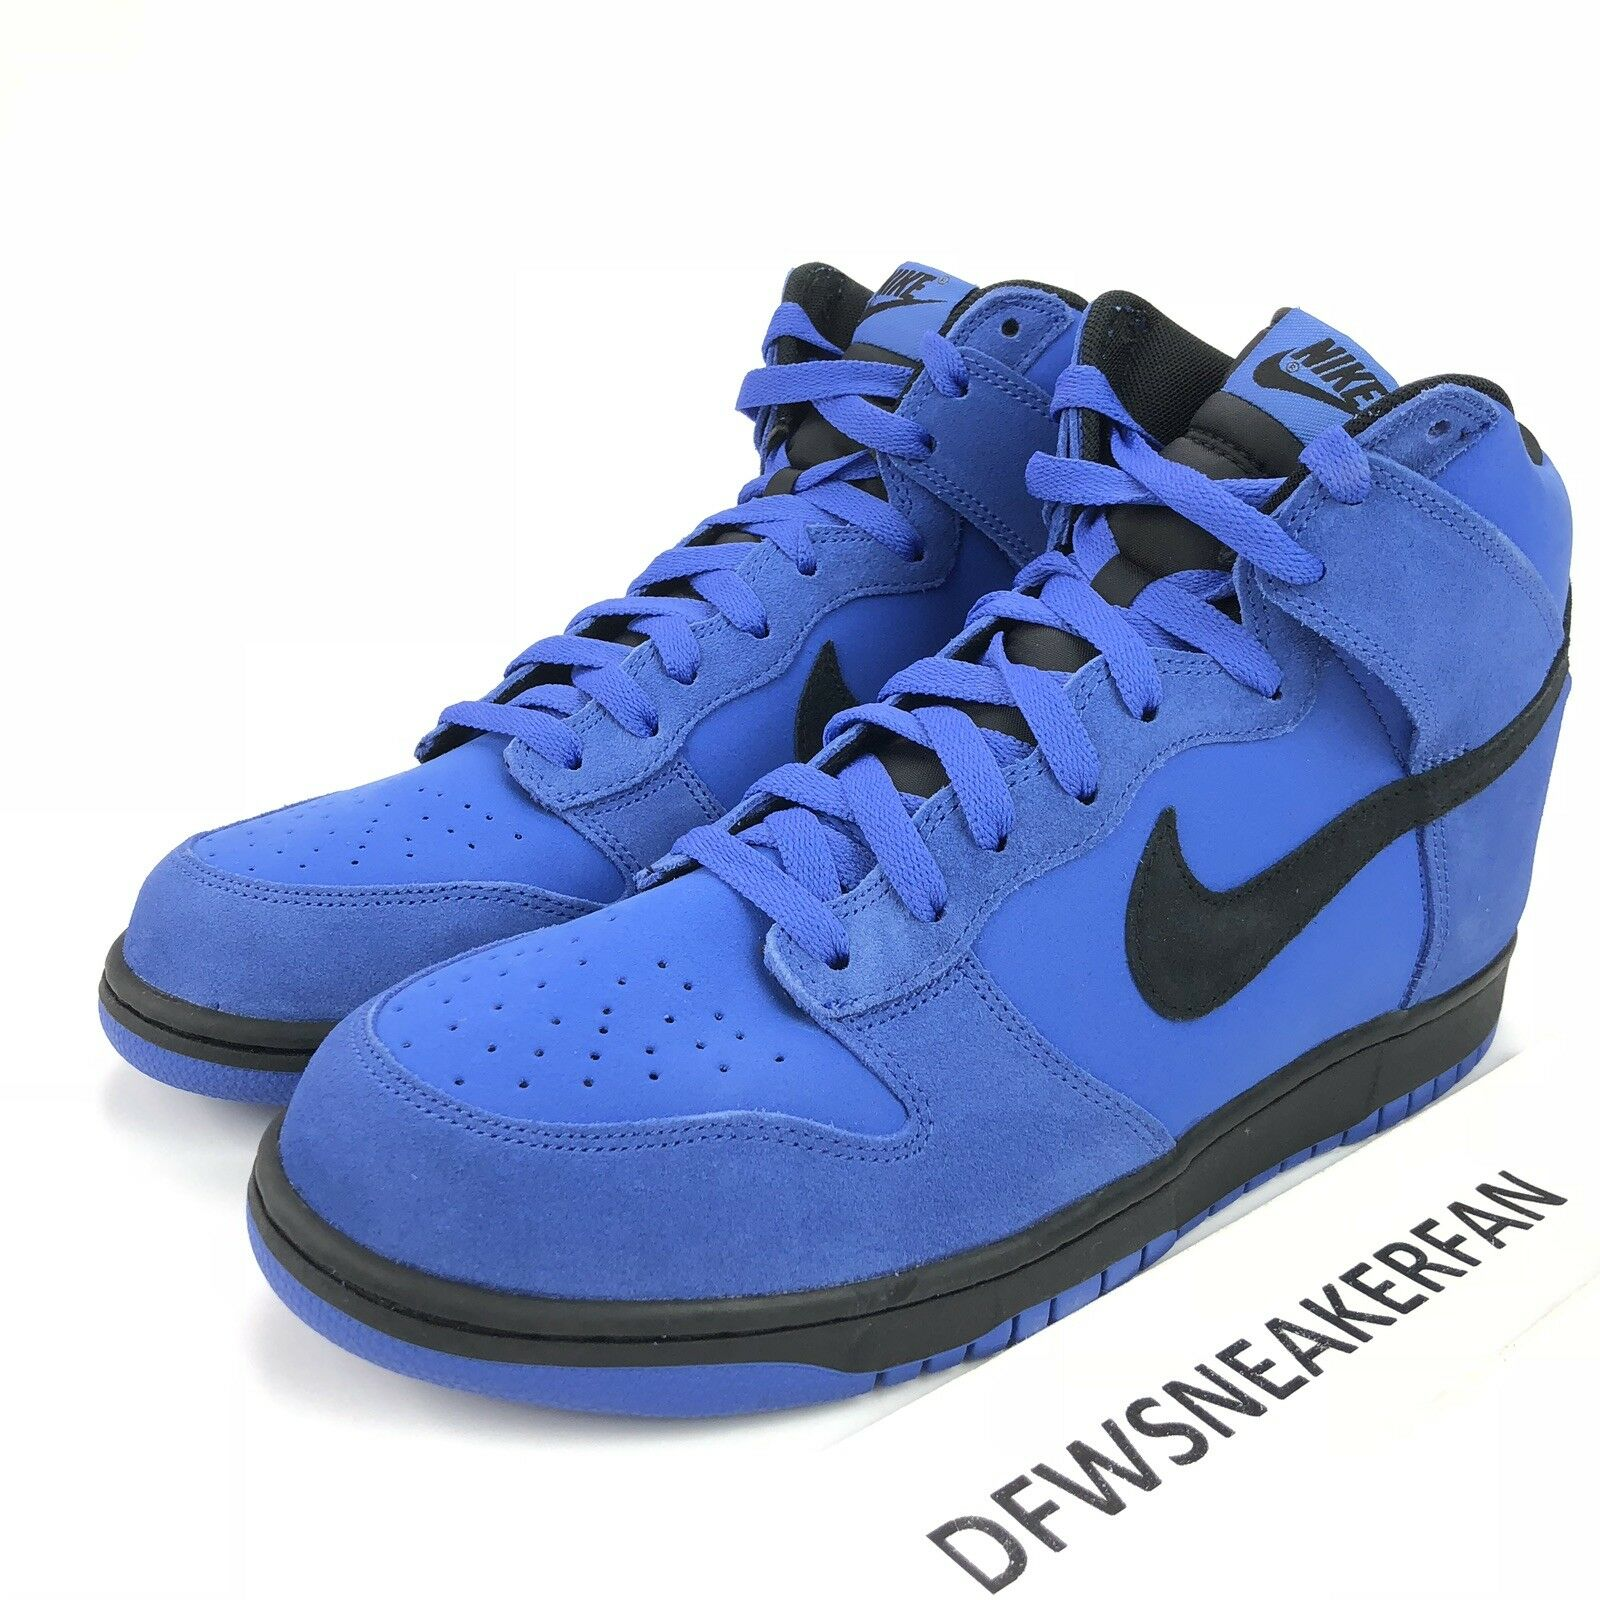 165f883fc587 Nike Dunk Hi Comet Men s Size Size Size 9 bluee Suade Black 904233-401 New